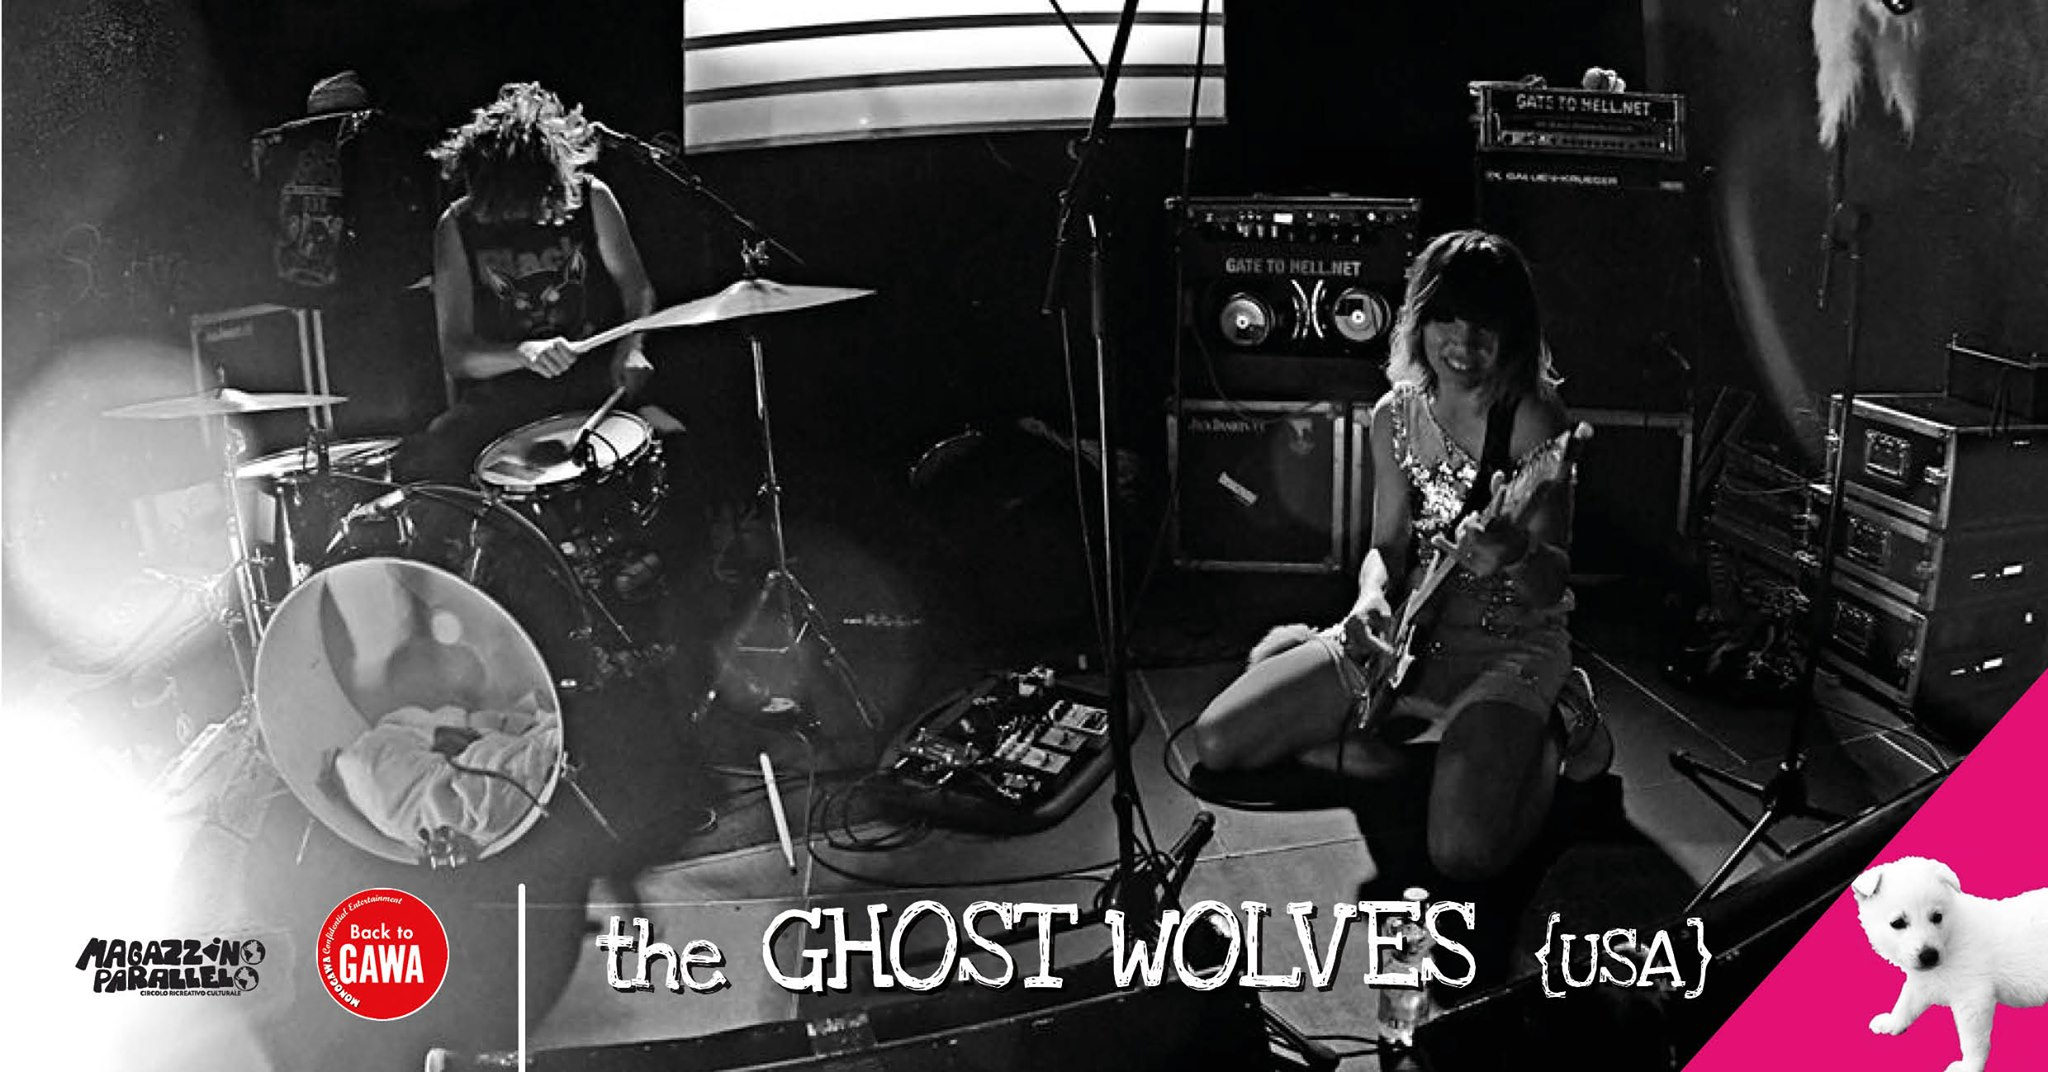 The Ghost Wolves - USA // at Magazzino Parallelo